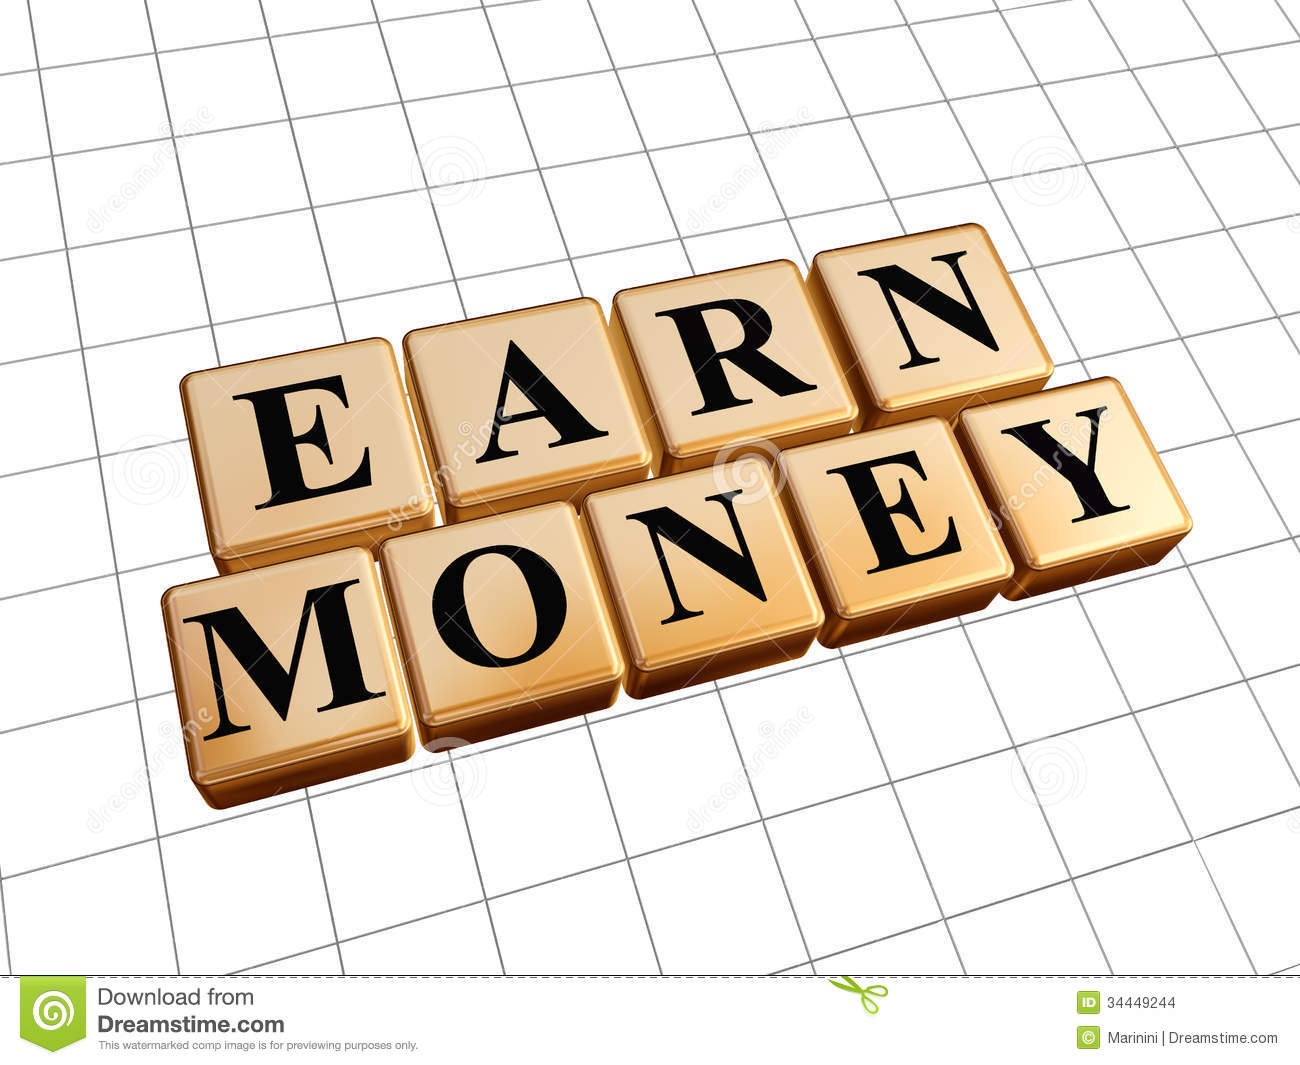 earn money writing reviews